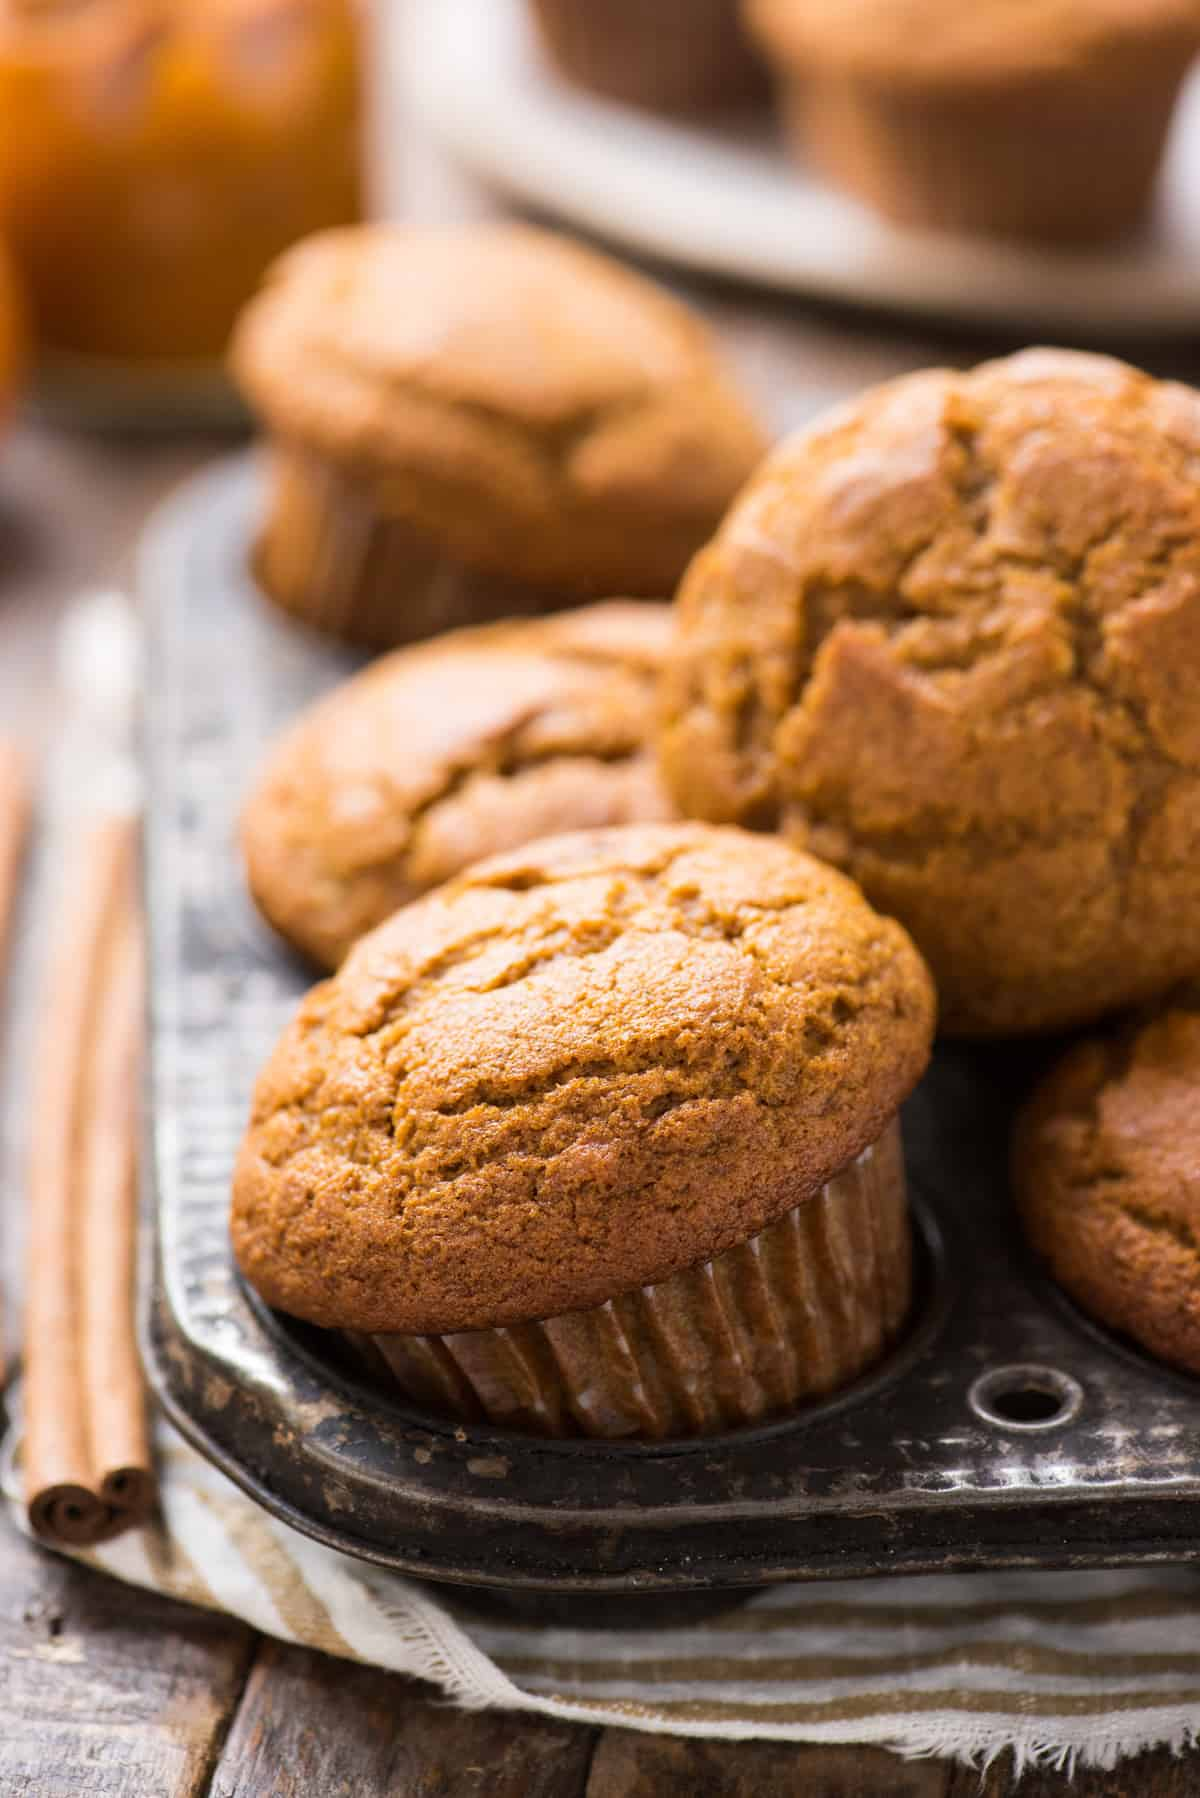 pumpkin muffins arranged in metal muffin pan with cinnamon stick on the left side